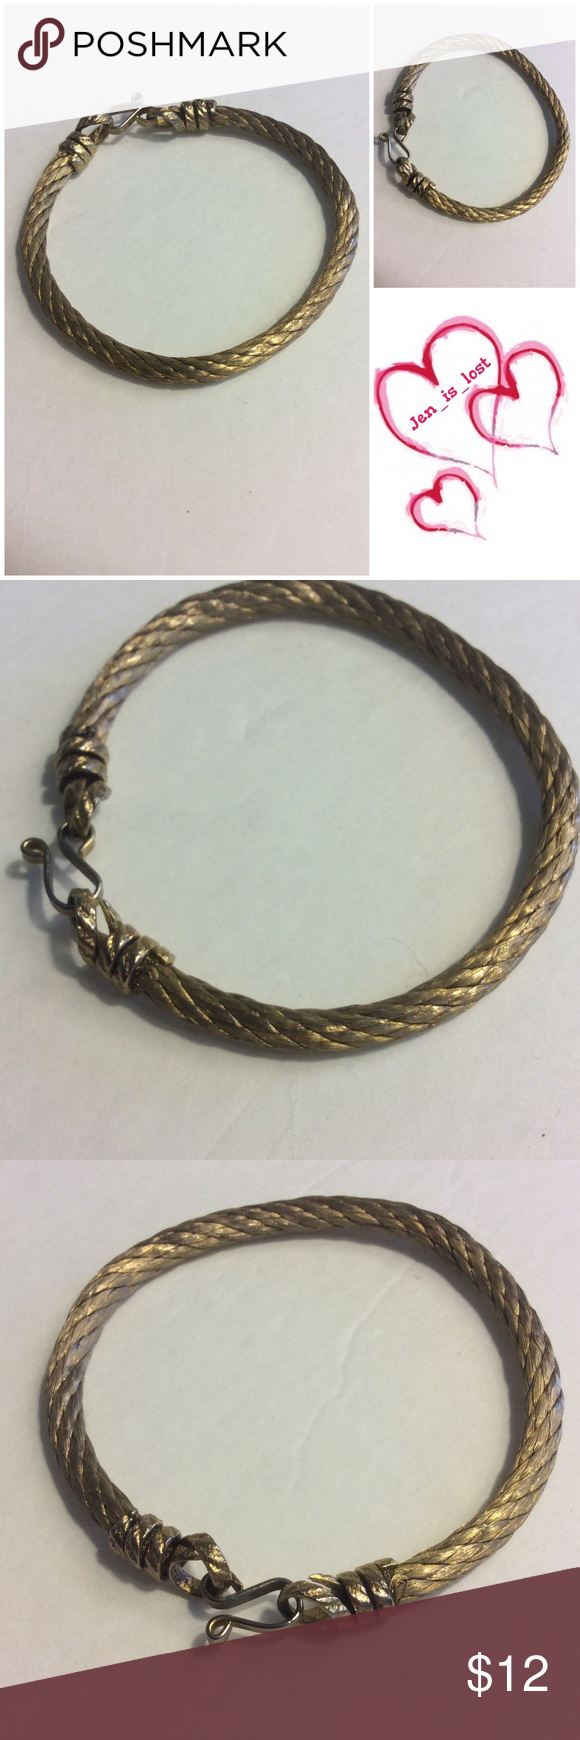 for sale gold tone rope bracelet beautiful goldtone rope